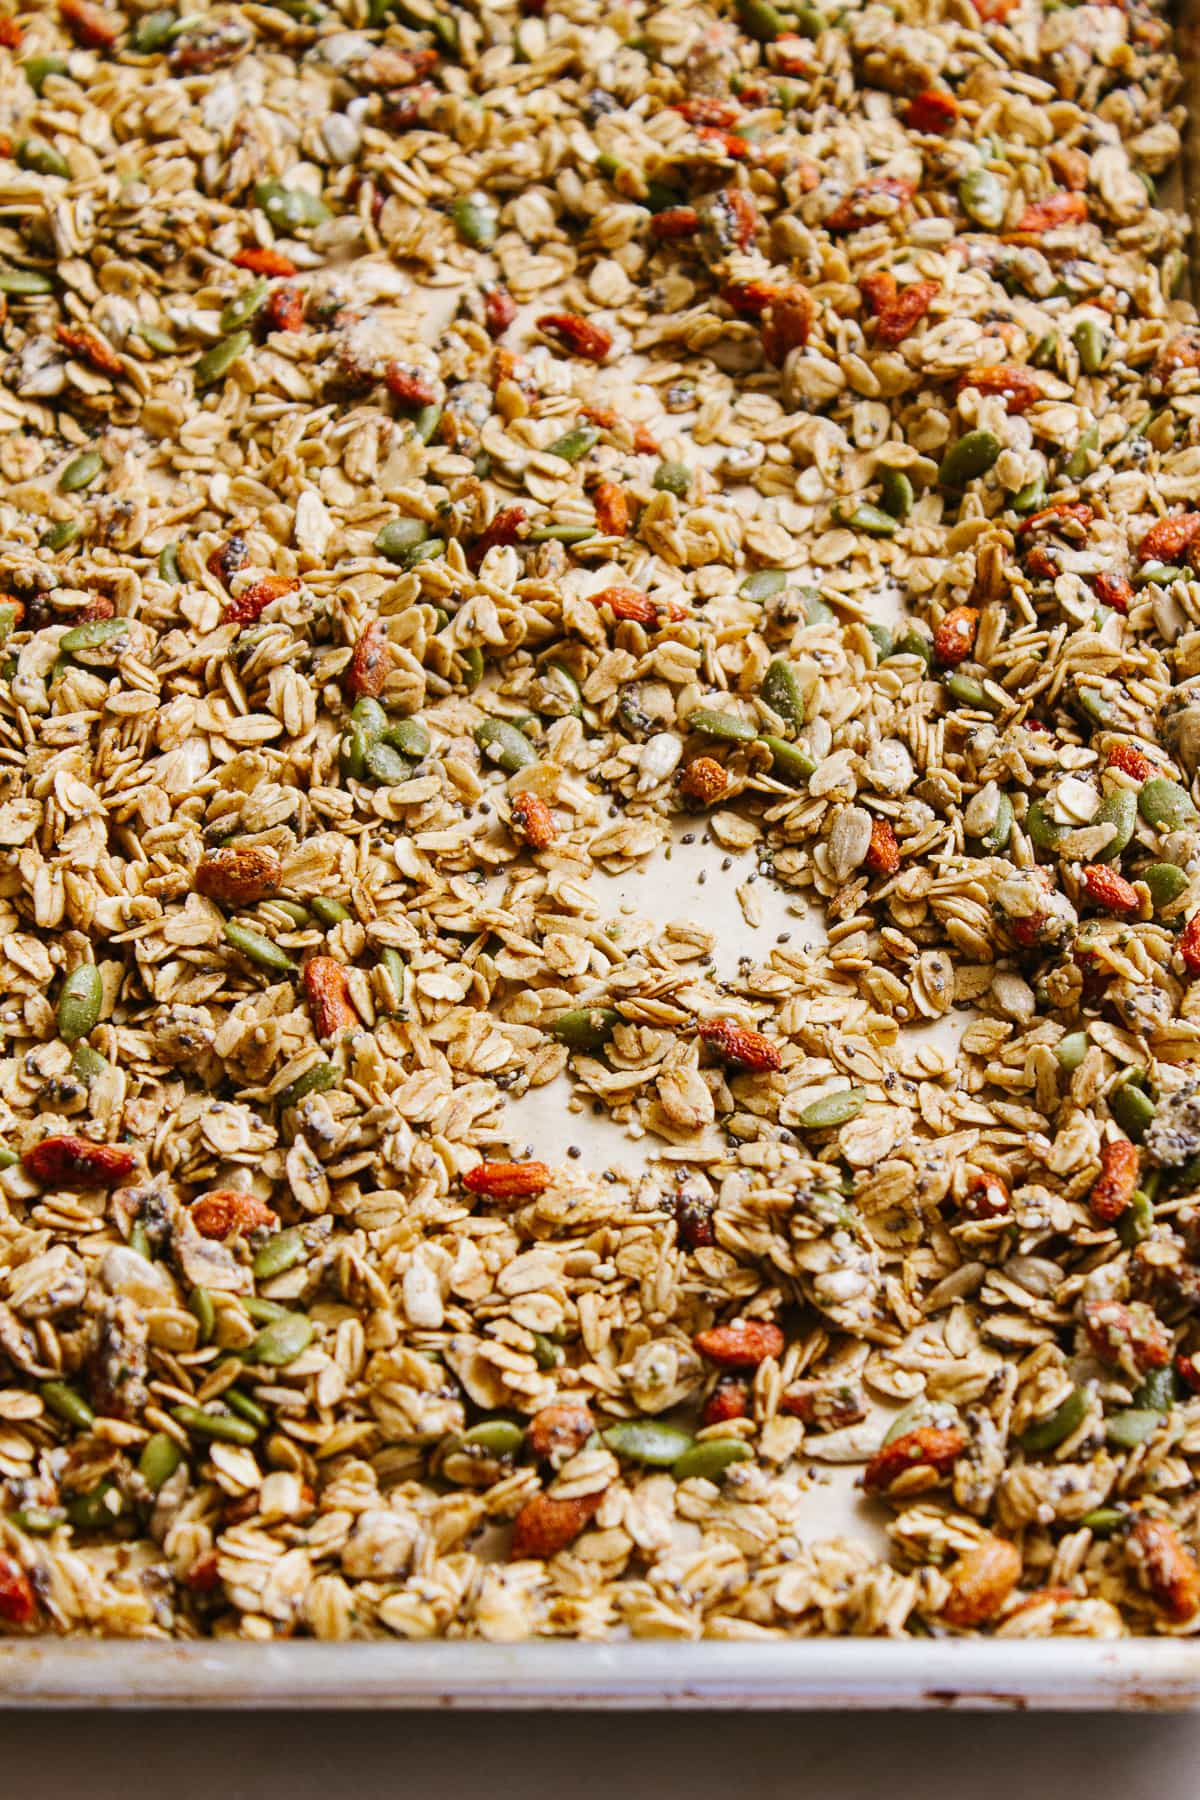 side angle view of freshly made seeds and goji berry granola on a baking sheet.